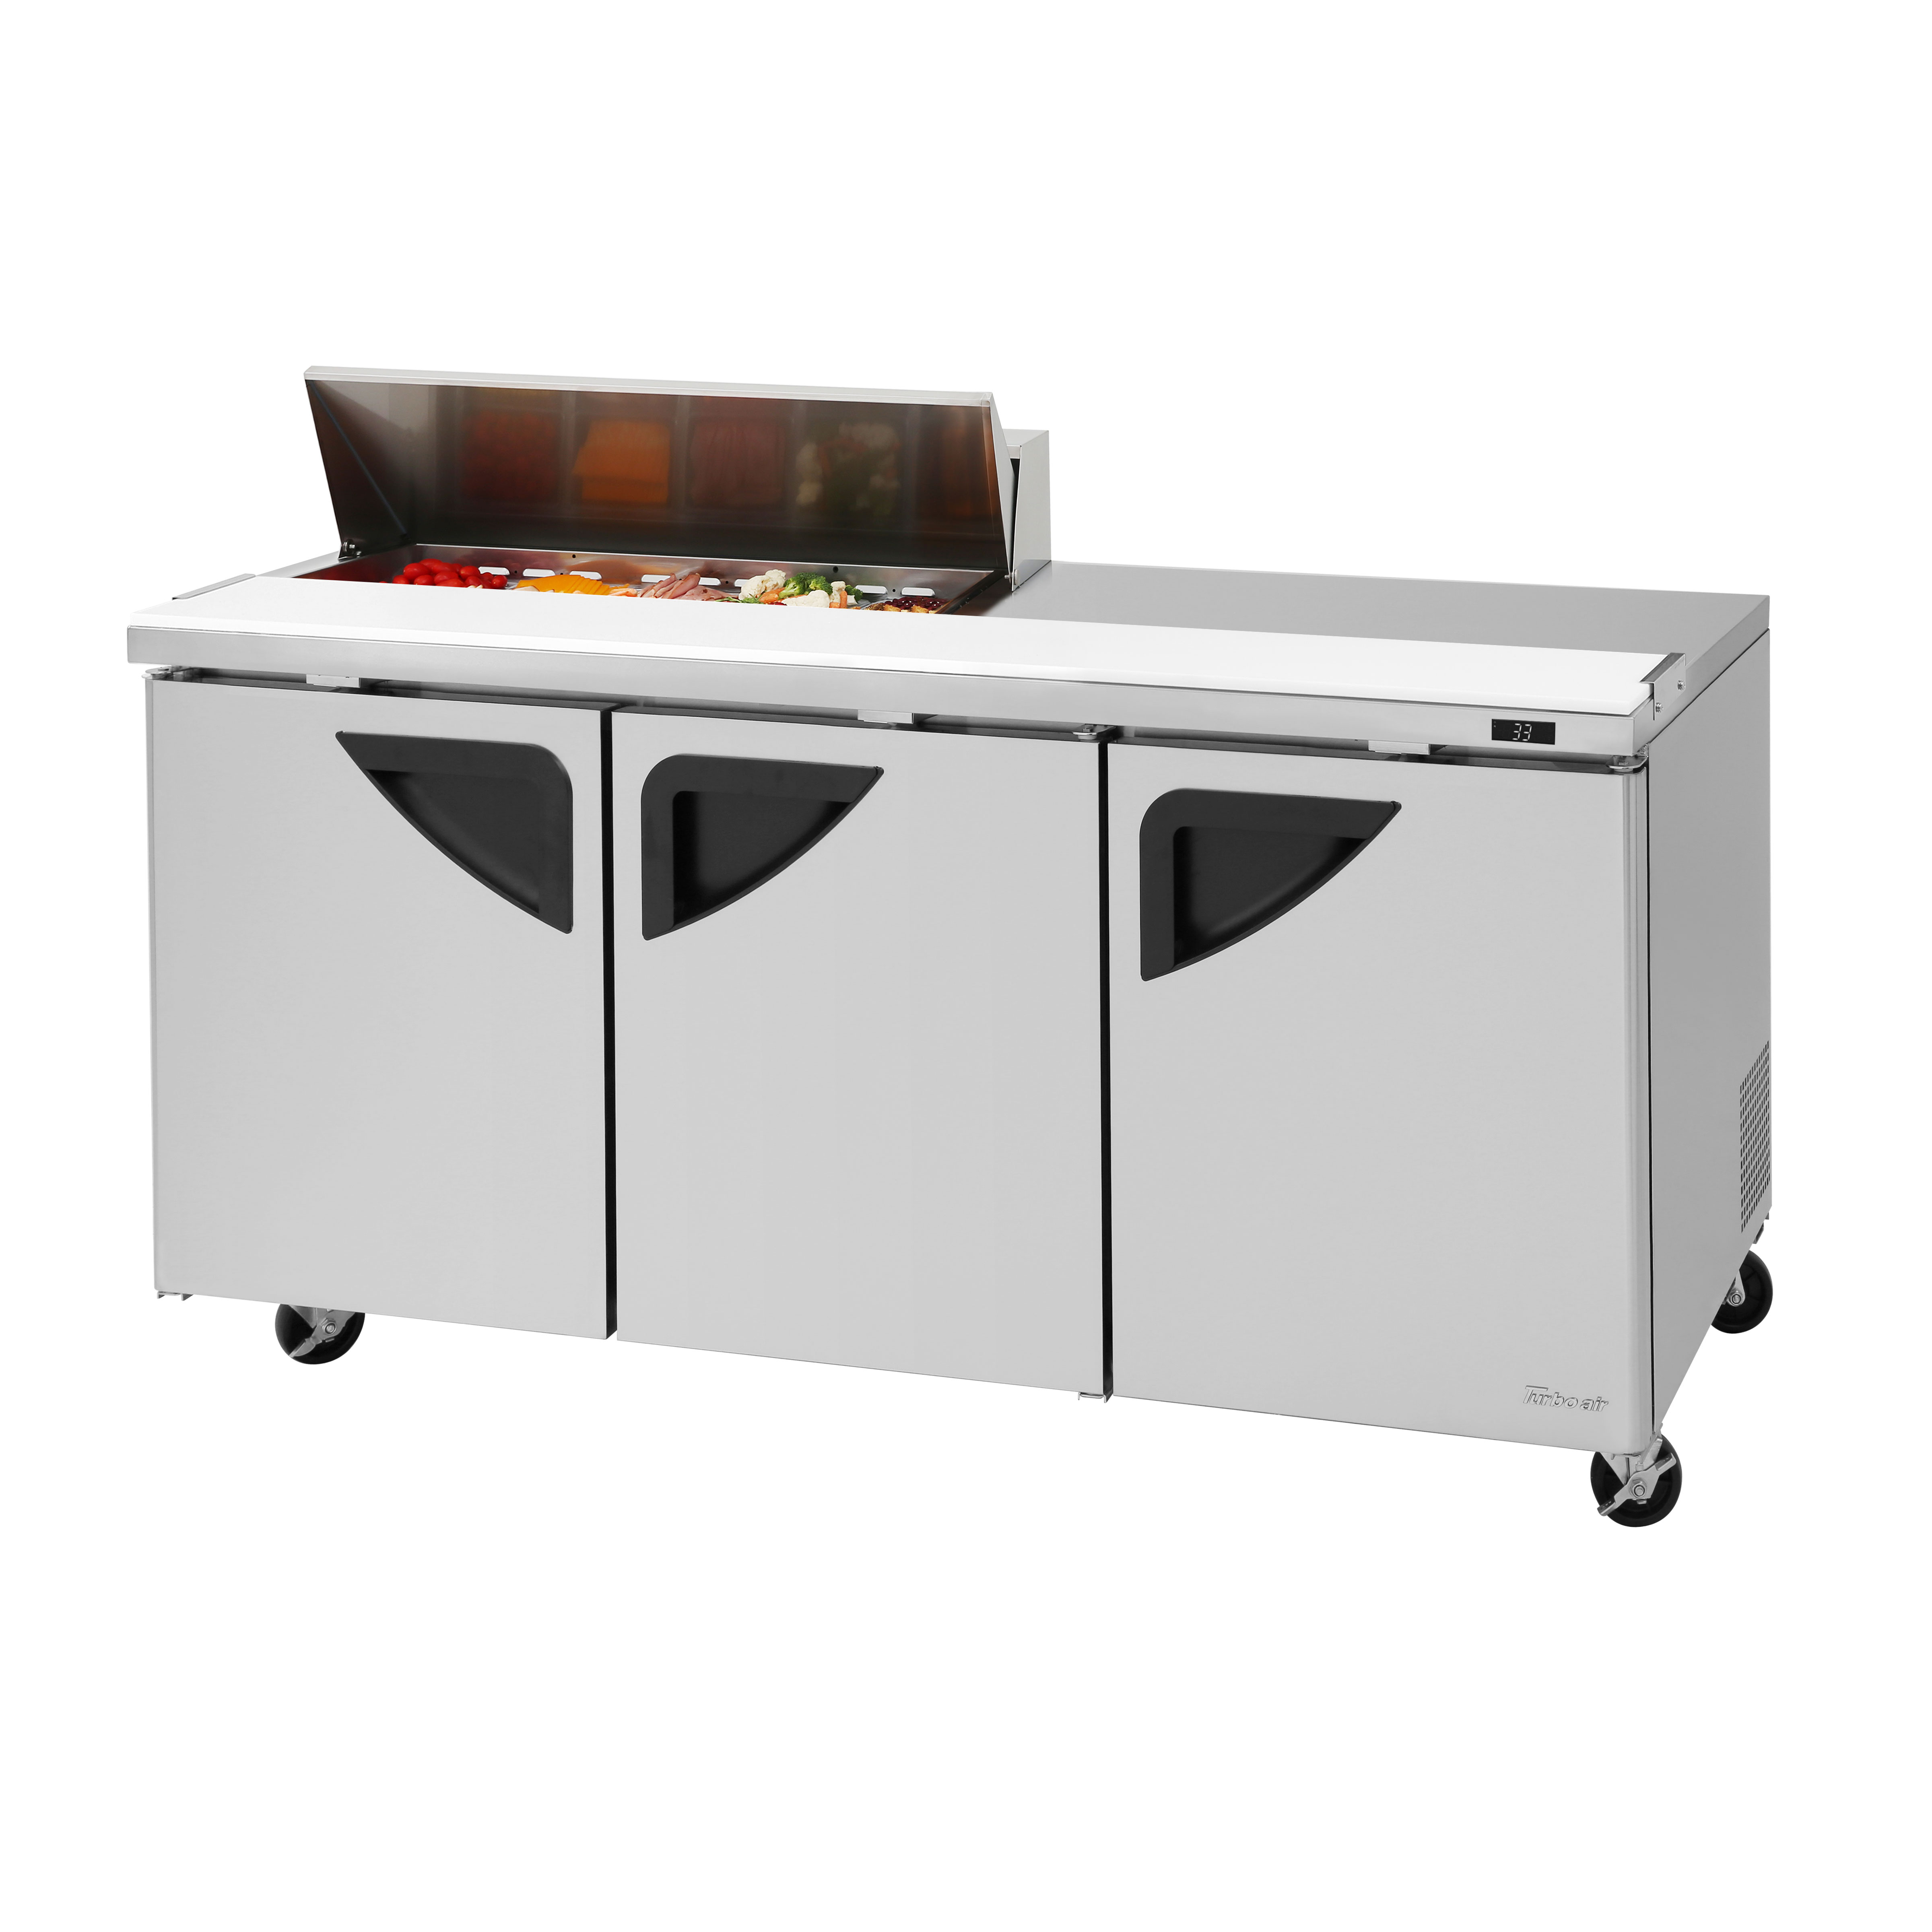 Turbo Air TST-72SD-10S-N refrigerated counter, sandwich / salad unit